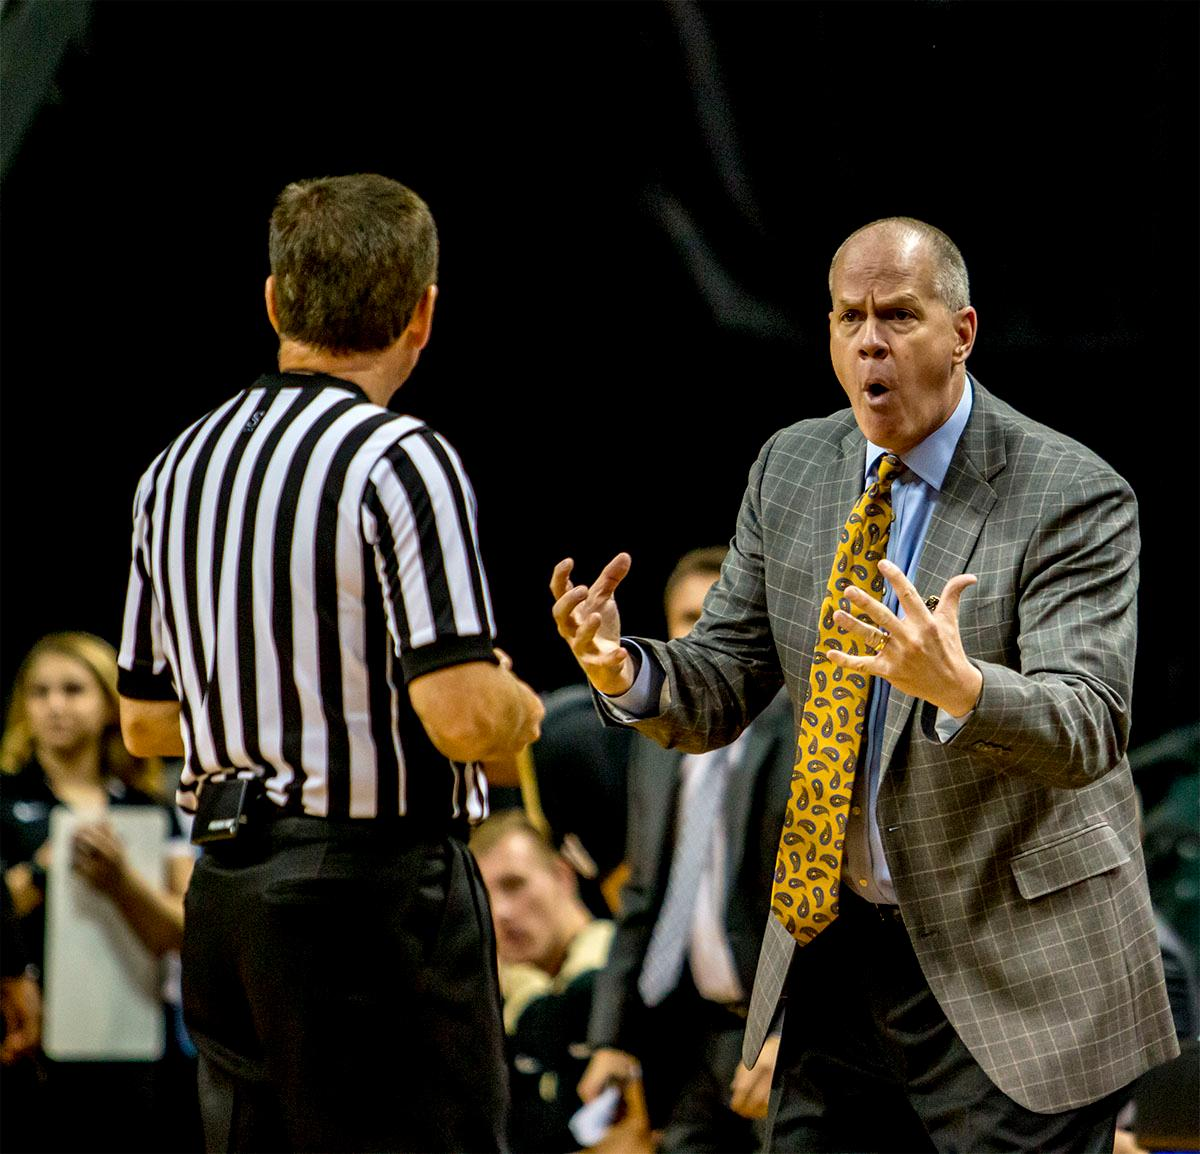 The Buffaloes head coach Tad Boyle argues with the referee over a call. The Oregon Ducks defeated the Colorado Buffaloes 77-62 at Matthew Knight Arena on Sunday. Troy Brown had a season-high score of 21 points, Elijah Brown added 17, while Kenny Wooten and Payton Pritchard added 13 and 12 respectively. Oregon is now 1-1 in conference play. The Ducks next face off against the Oregon State Beavers in Corvallis on Friday, January 5th. Photo by August Frank, Oregon News Lab